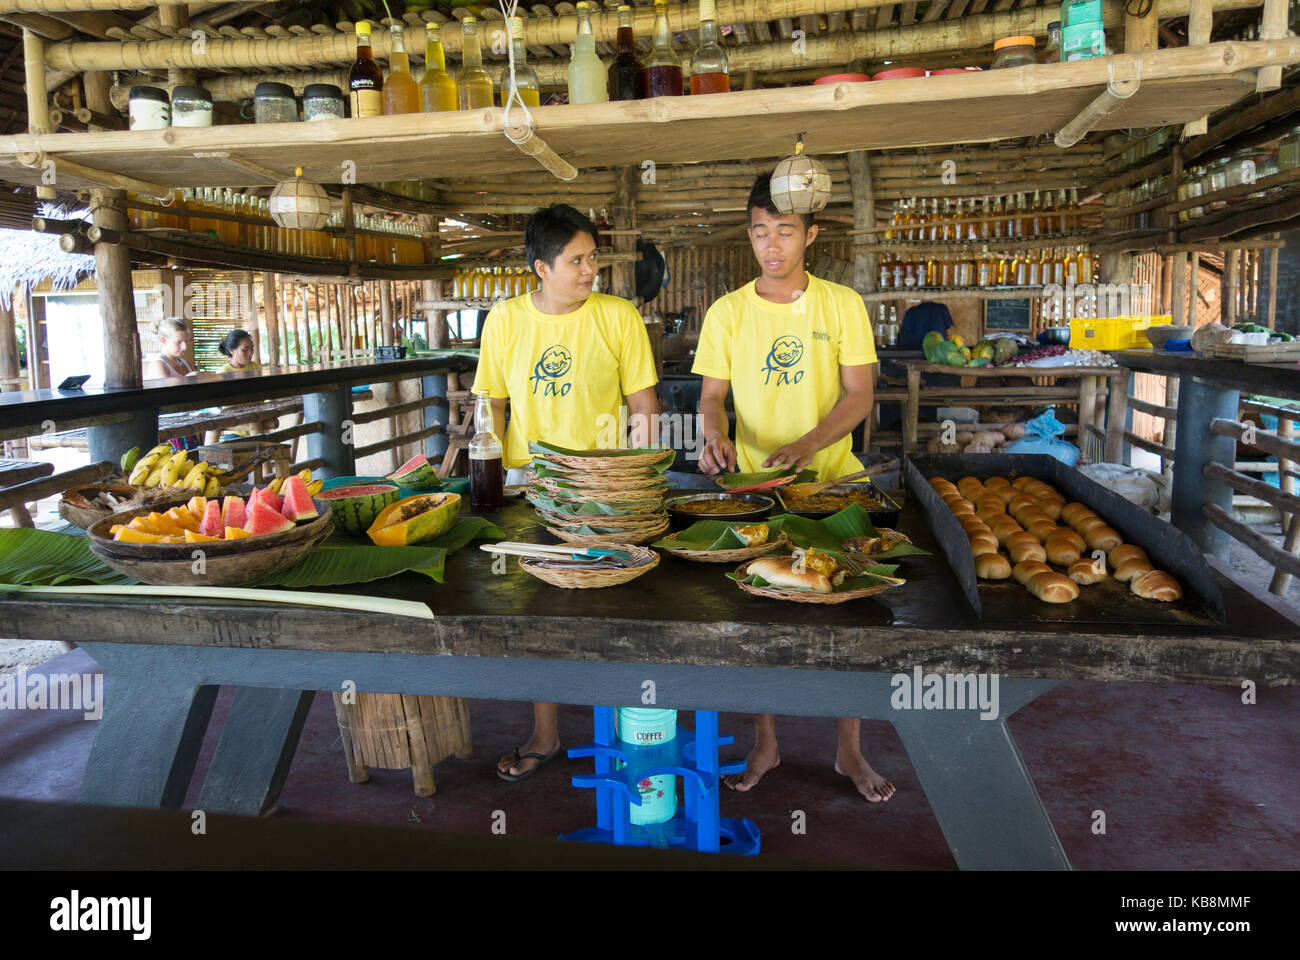 Philippines food preparation on an island hopping holiday, El Nido, Palawan, Philippines Asia - Stock Image